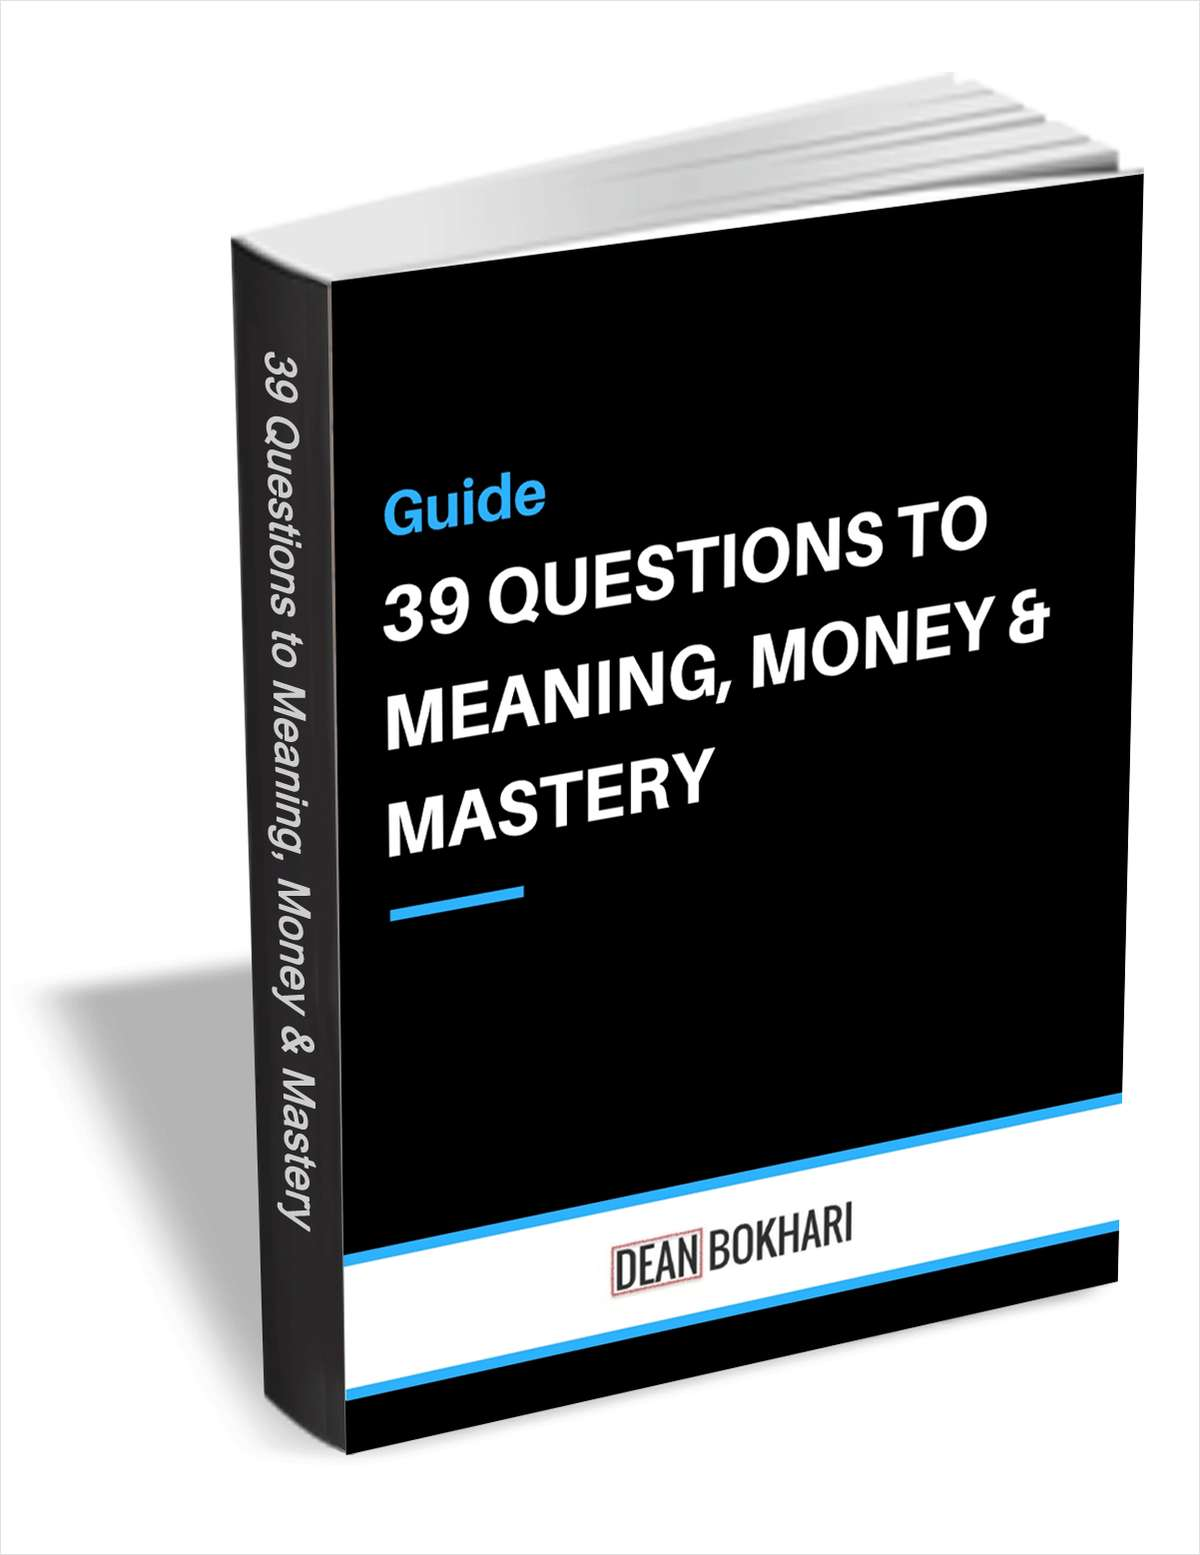 39 Questions to Meaning, Money & Mastery